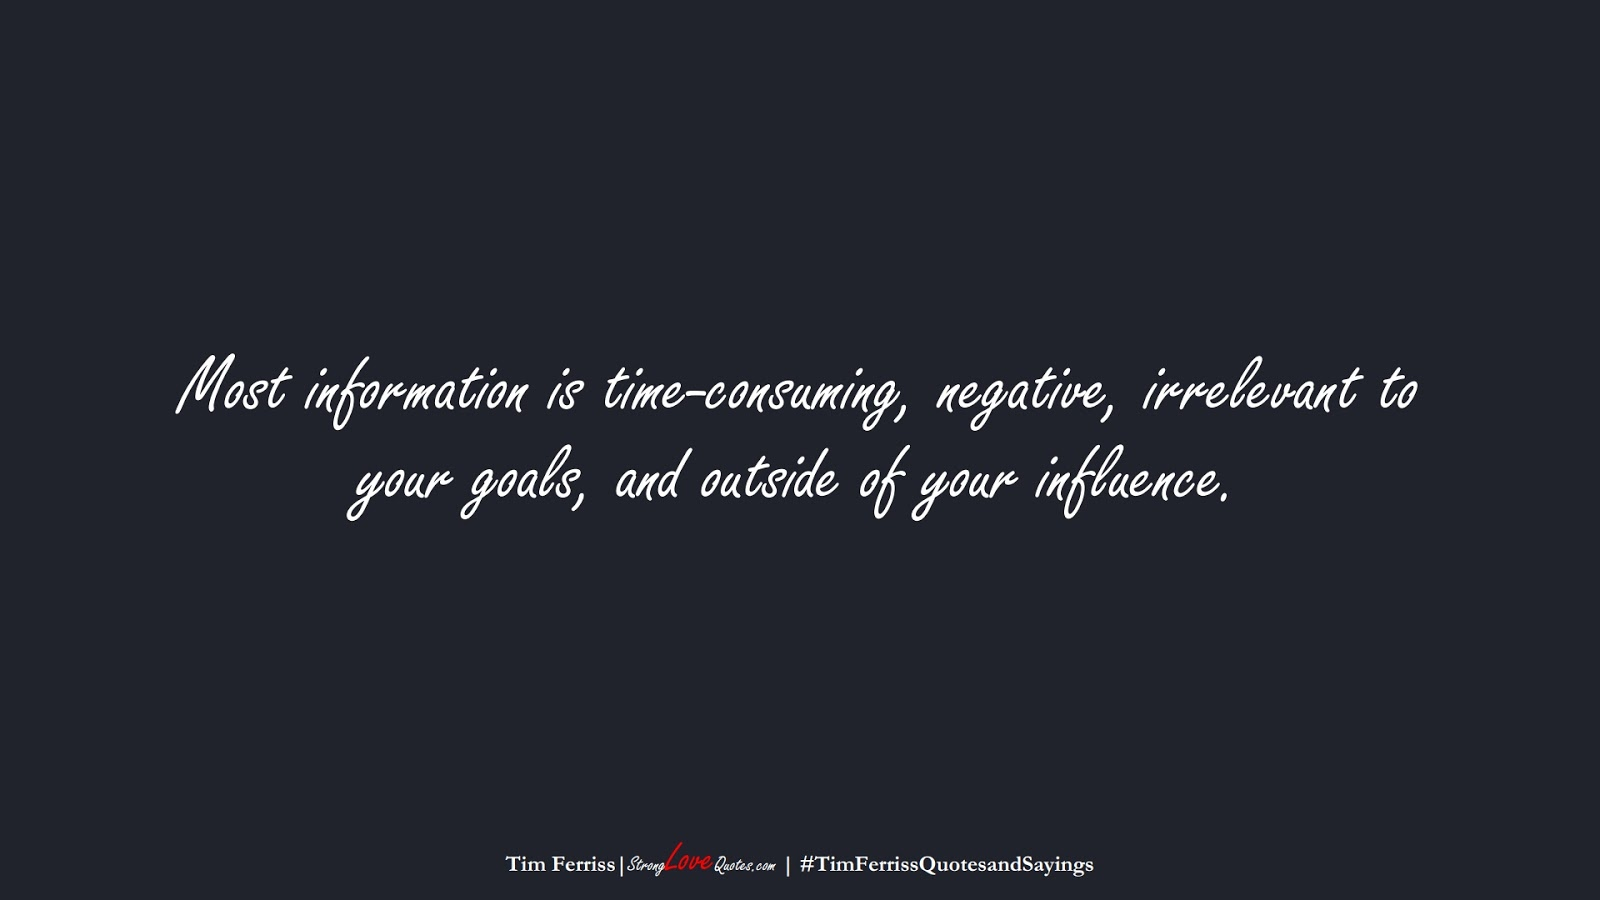 Most information is time-consuming, negative, irrelevant to your goals, and outside of your influence. (Tim Ferriss);  #TimFerrissQuotesandSayings